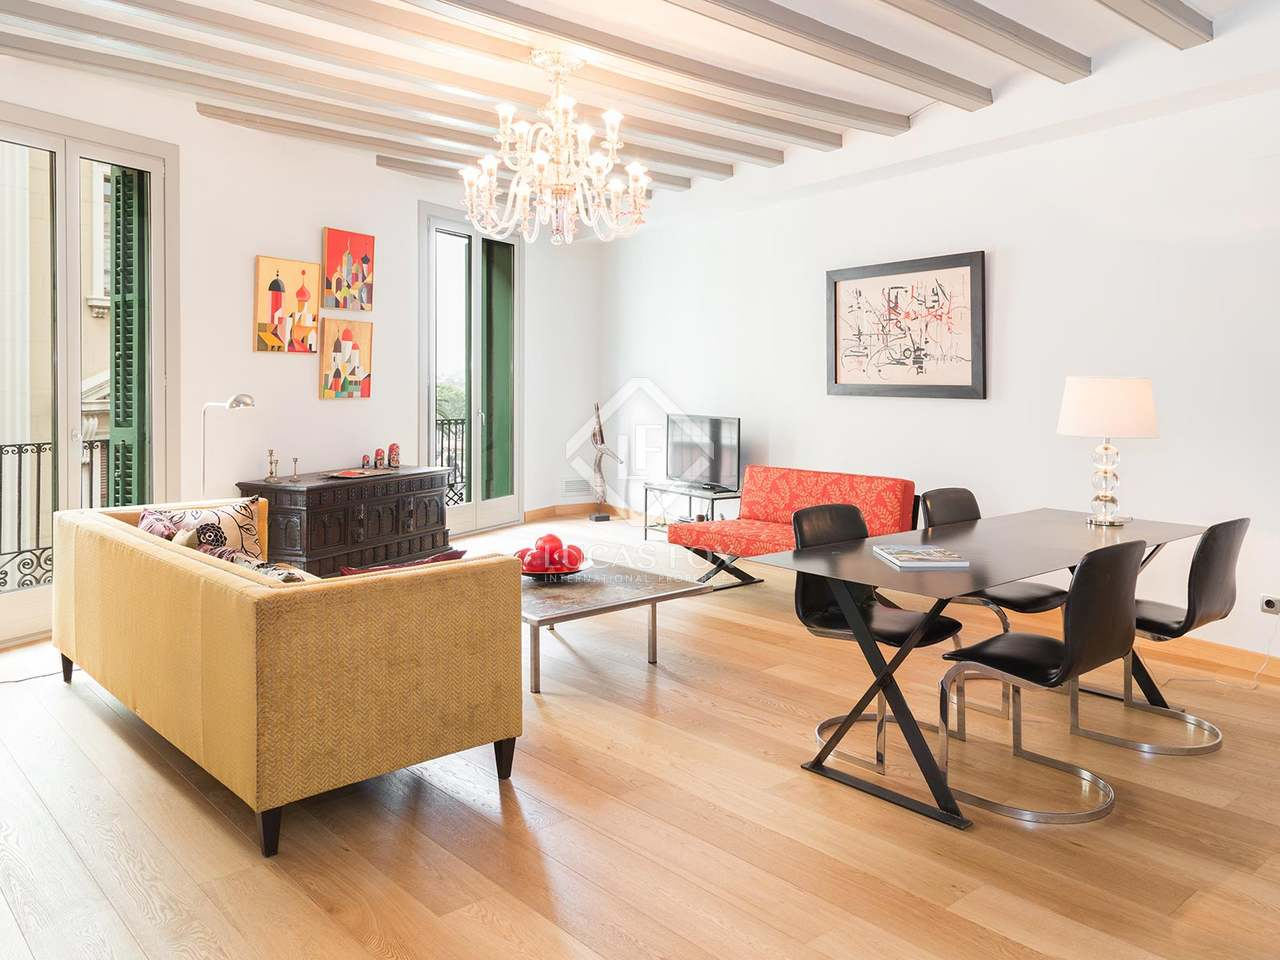 Luxury 2 Bedroom Apartment For Sale In Barcelona Old Town